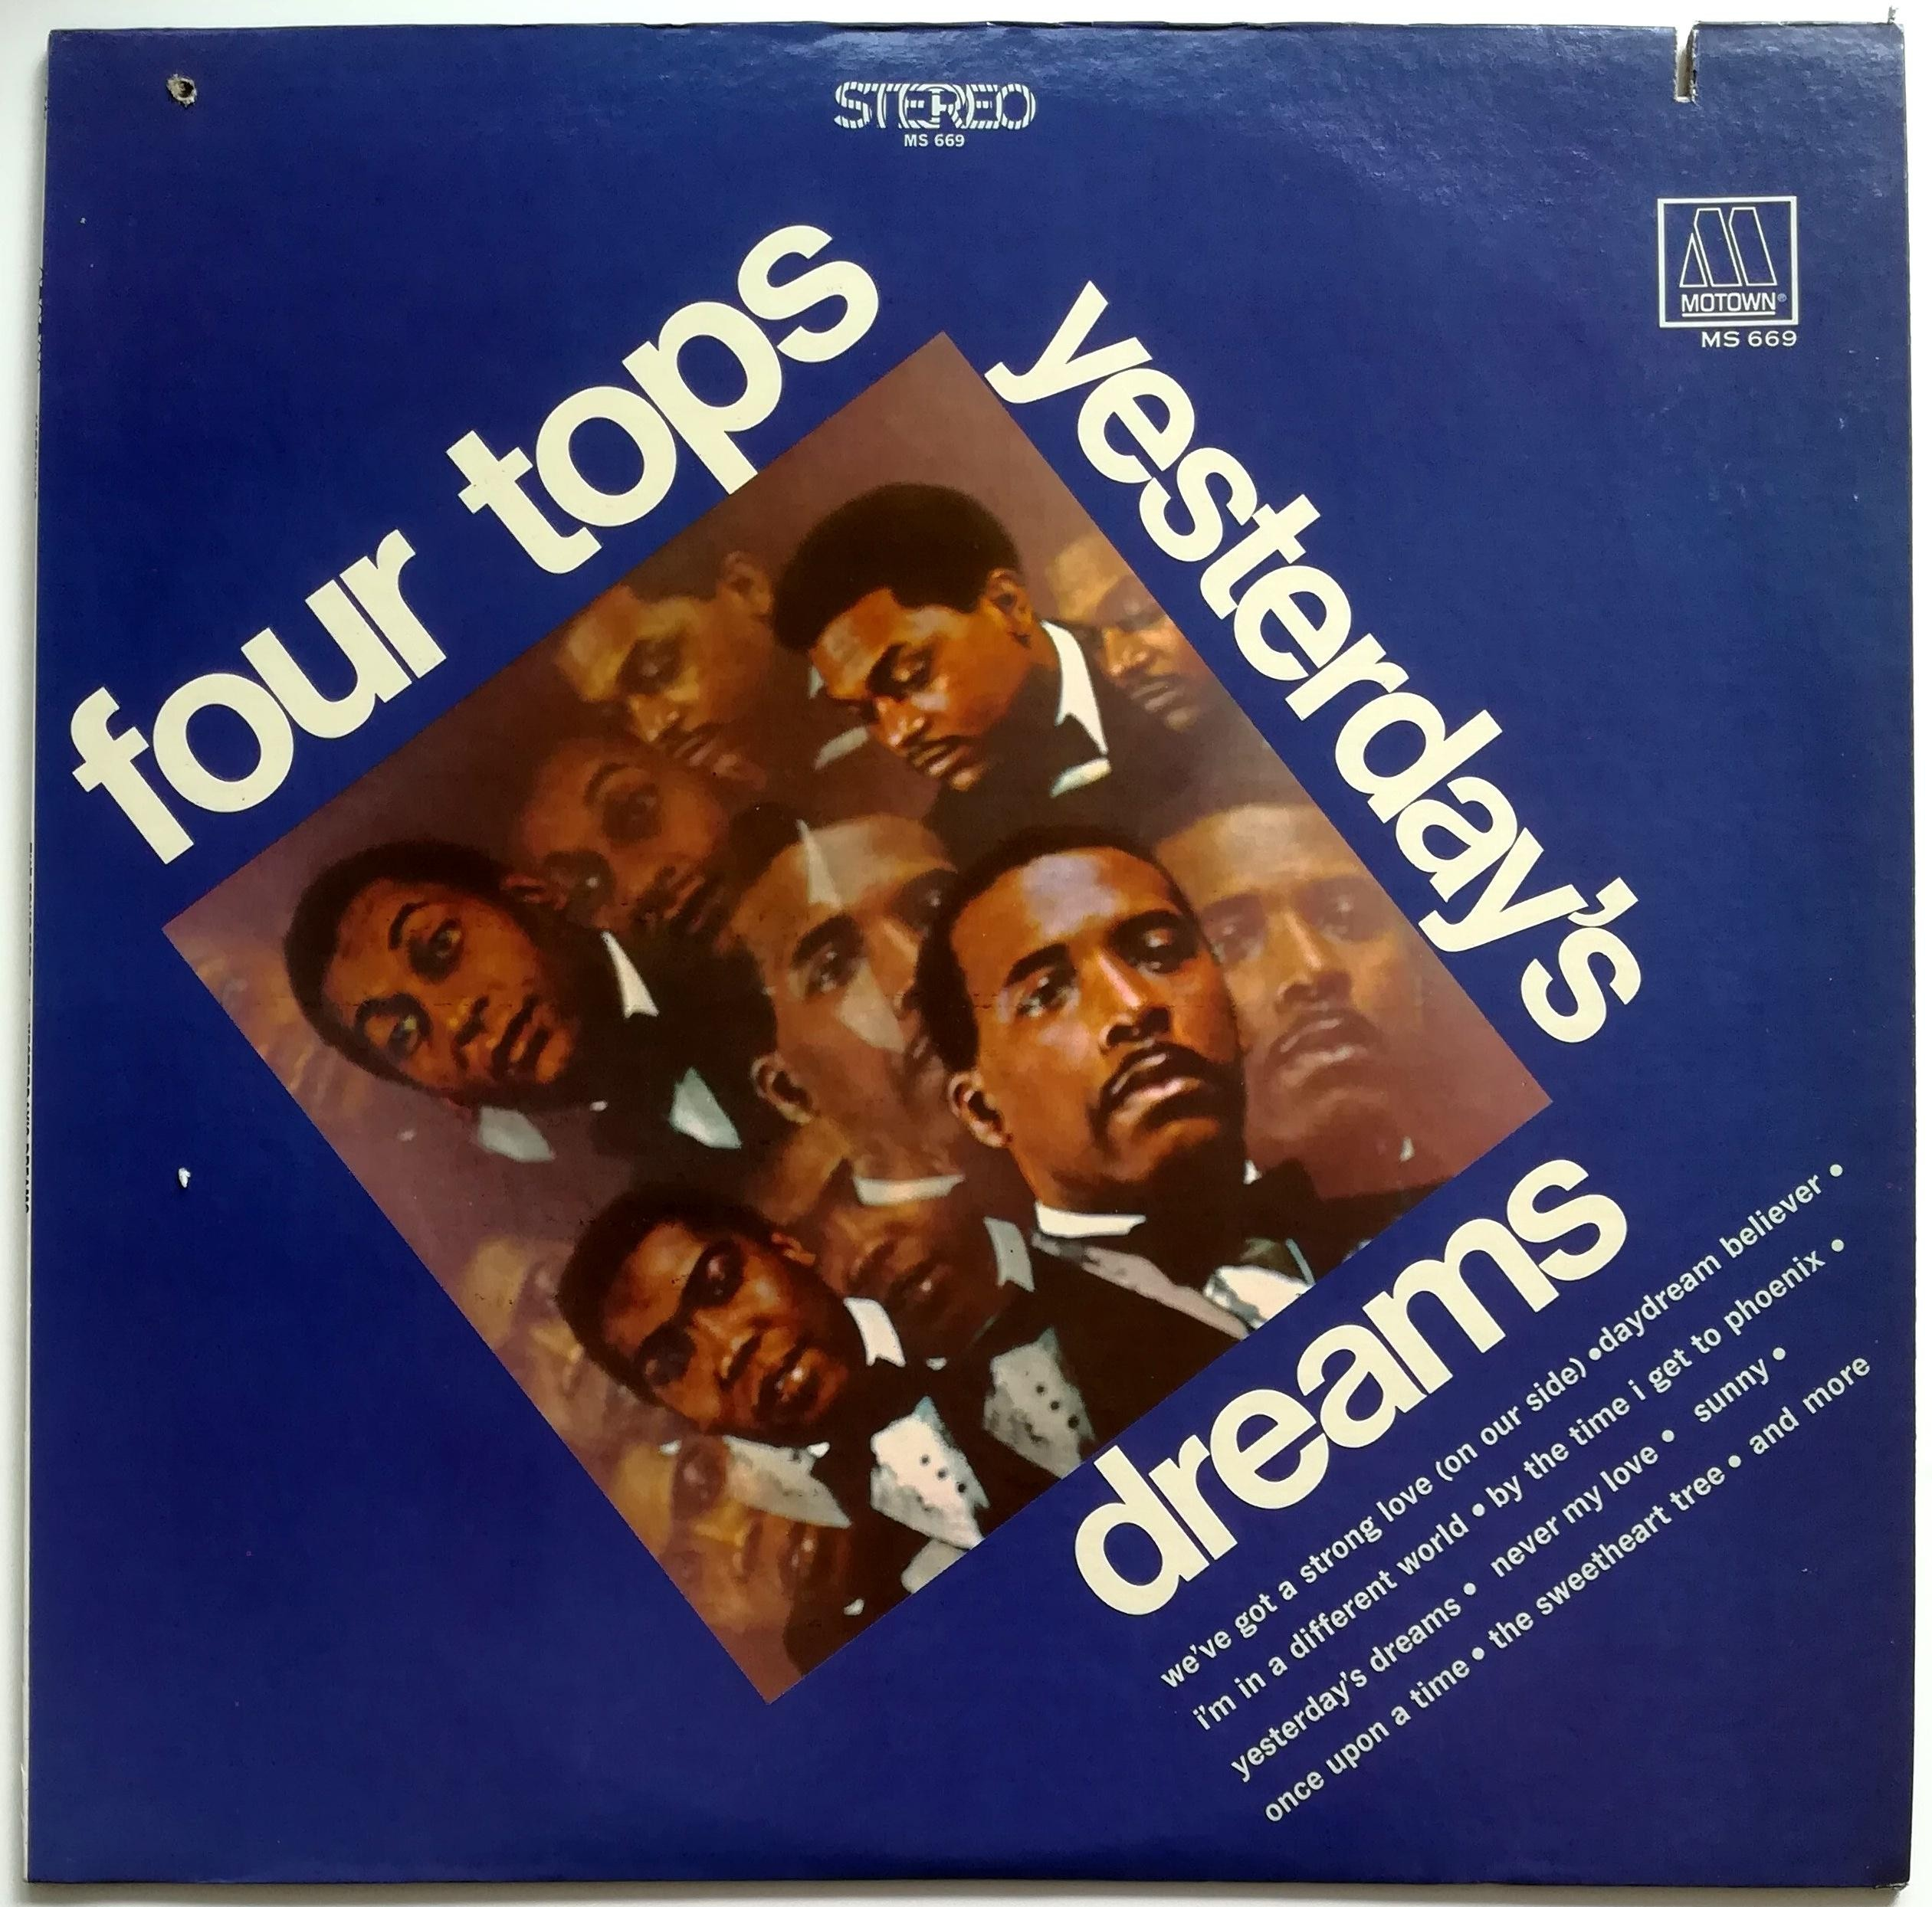 Four Tops - Yesterdays Dreams